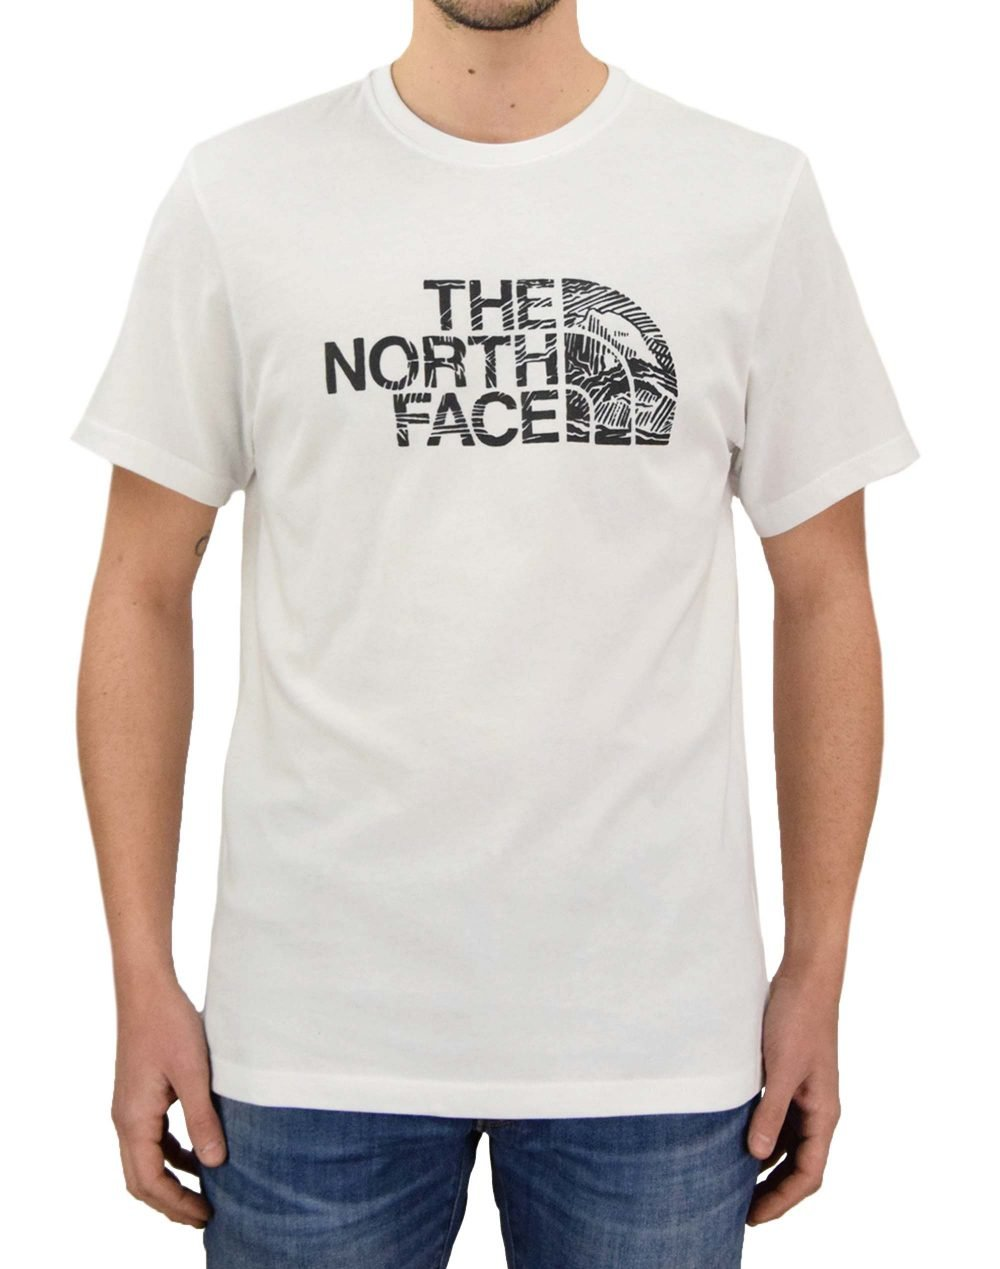 The North Face Woodcut Dome Tee (NF00A3G1LA91) White